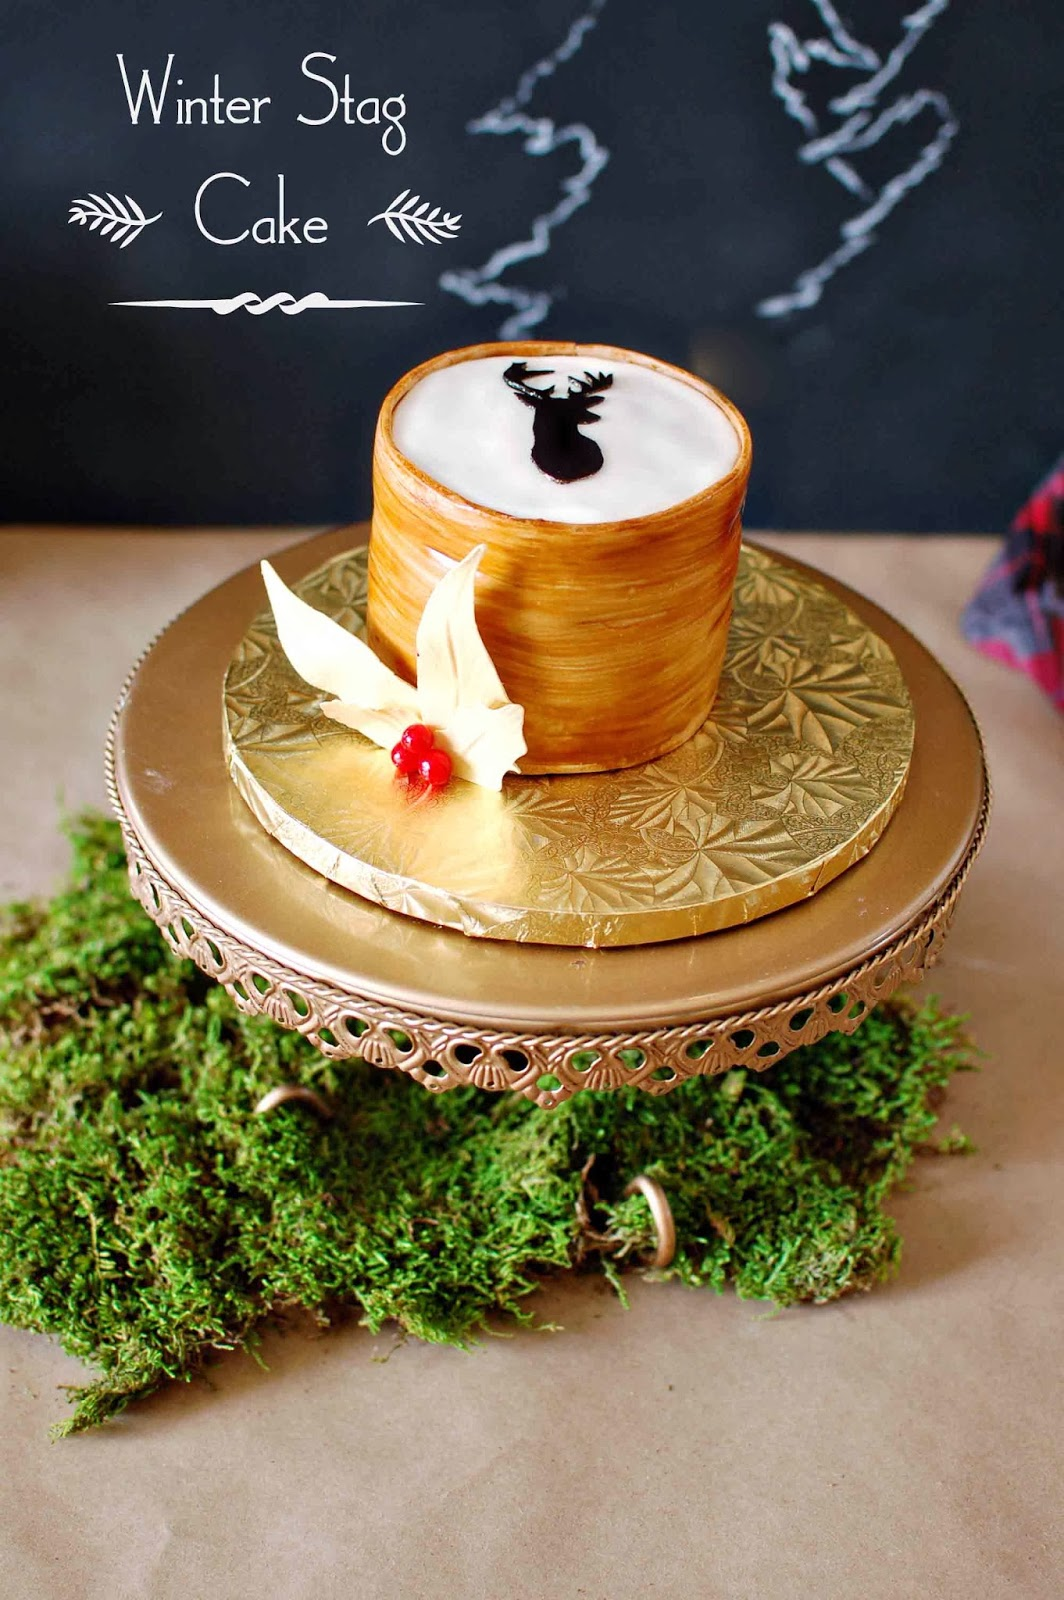 CAKE HAPPENS: Christmas White Aspen Cake & Wood Grain Stag ...